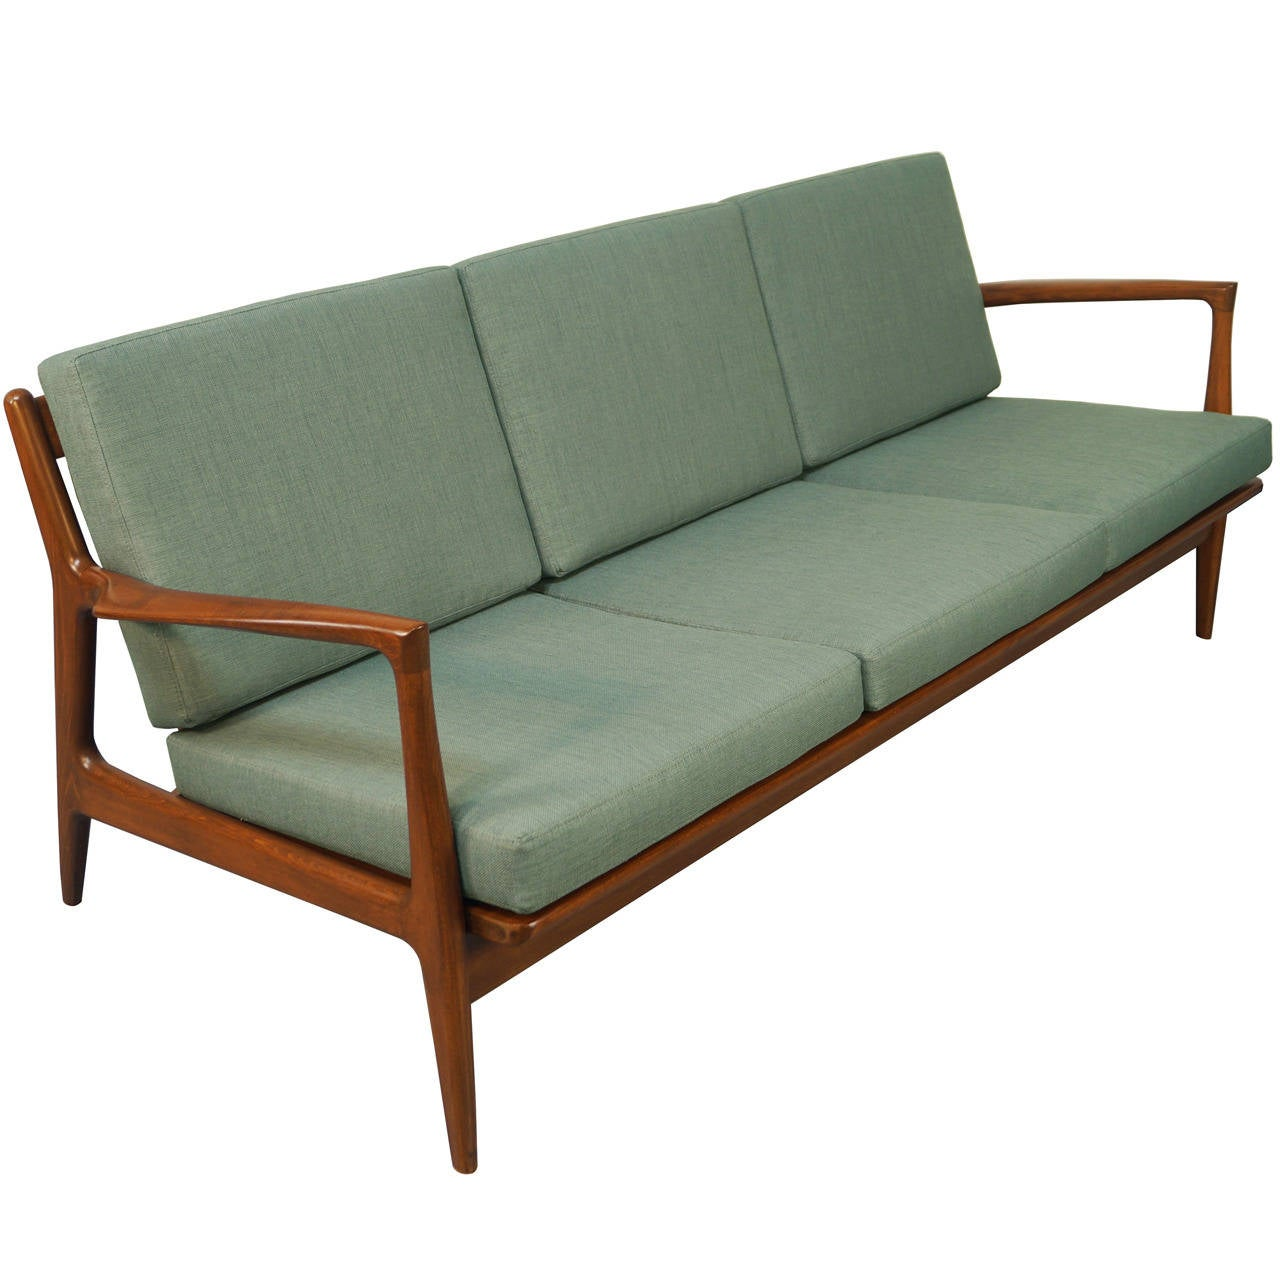 Danish modern sofas catchy mid century modern sleeper sofa for Modern furniture